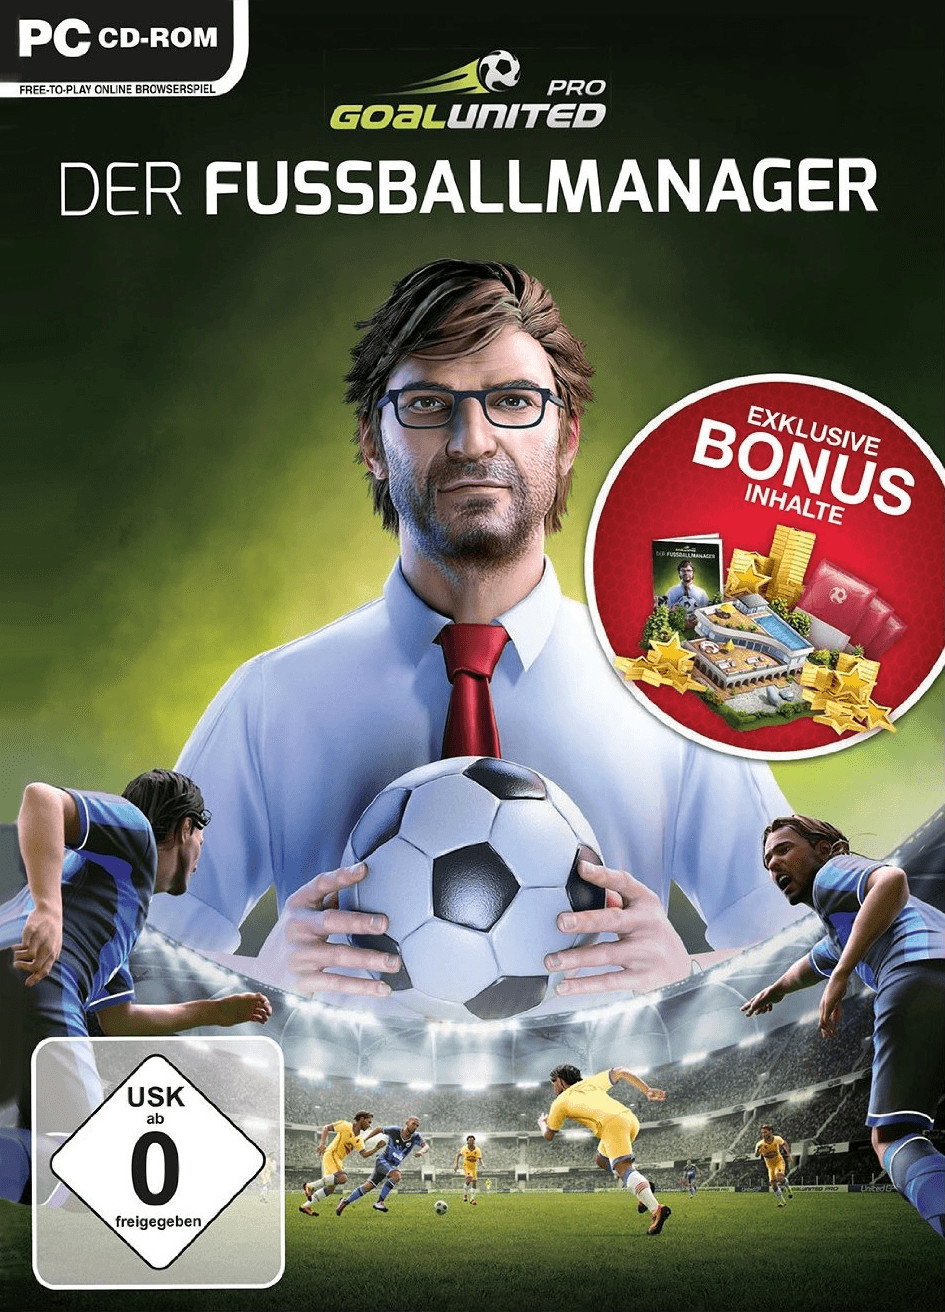 Goalunited Pro: Der Fussballmanager (PC)